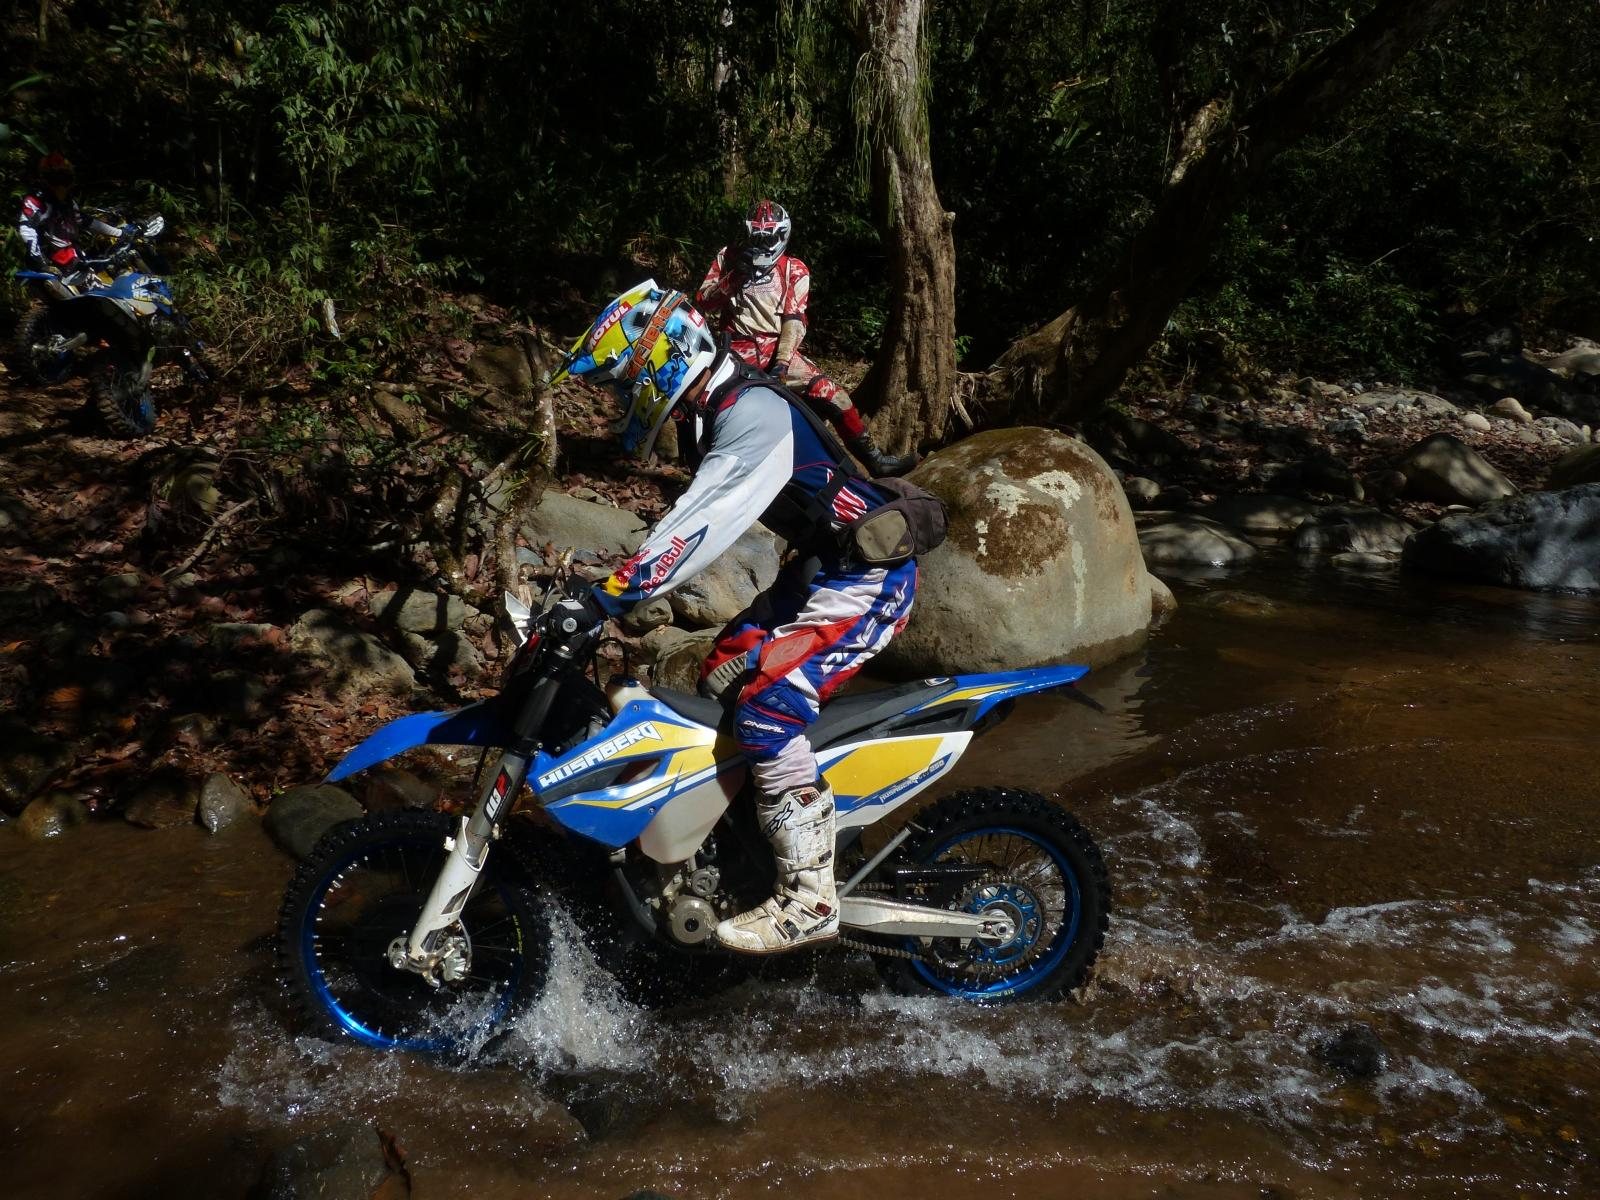 http://www.motorrad-bilder.at/slideshows/291/010638/enduro_offroad_costa_rica_020.jpg